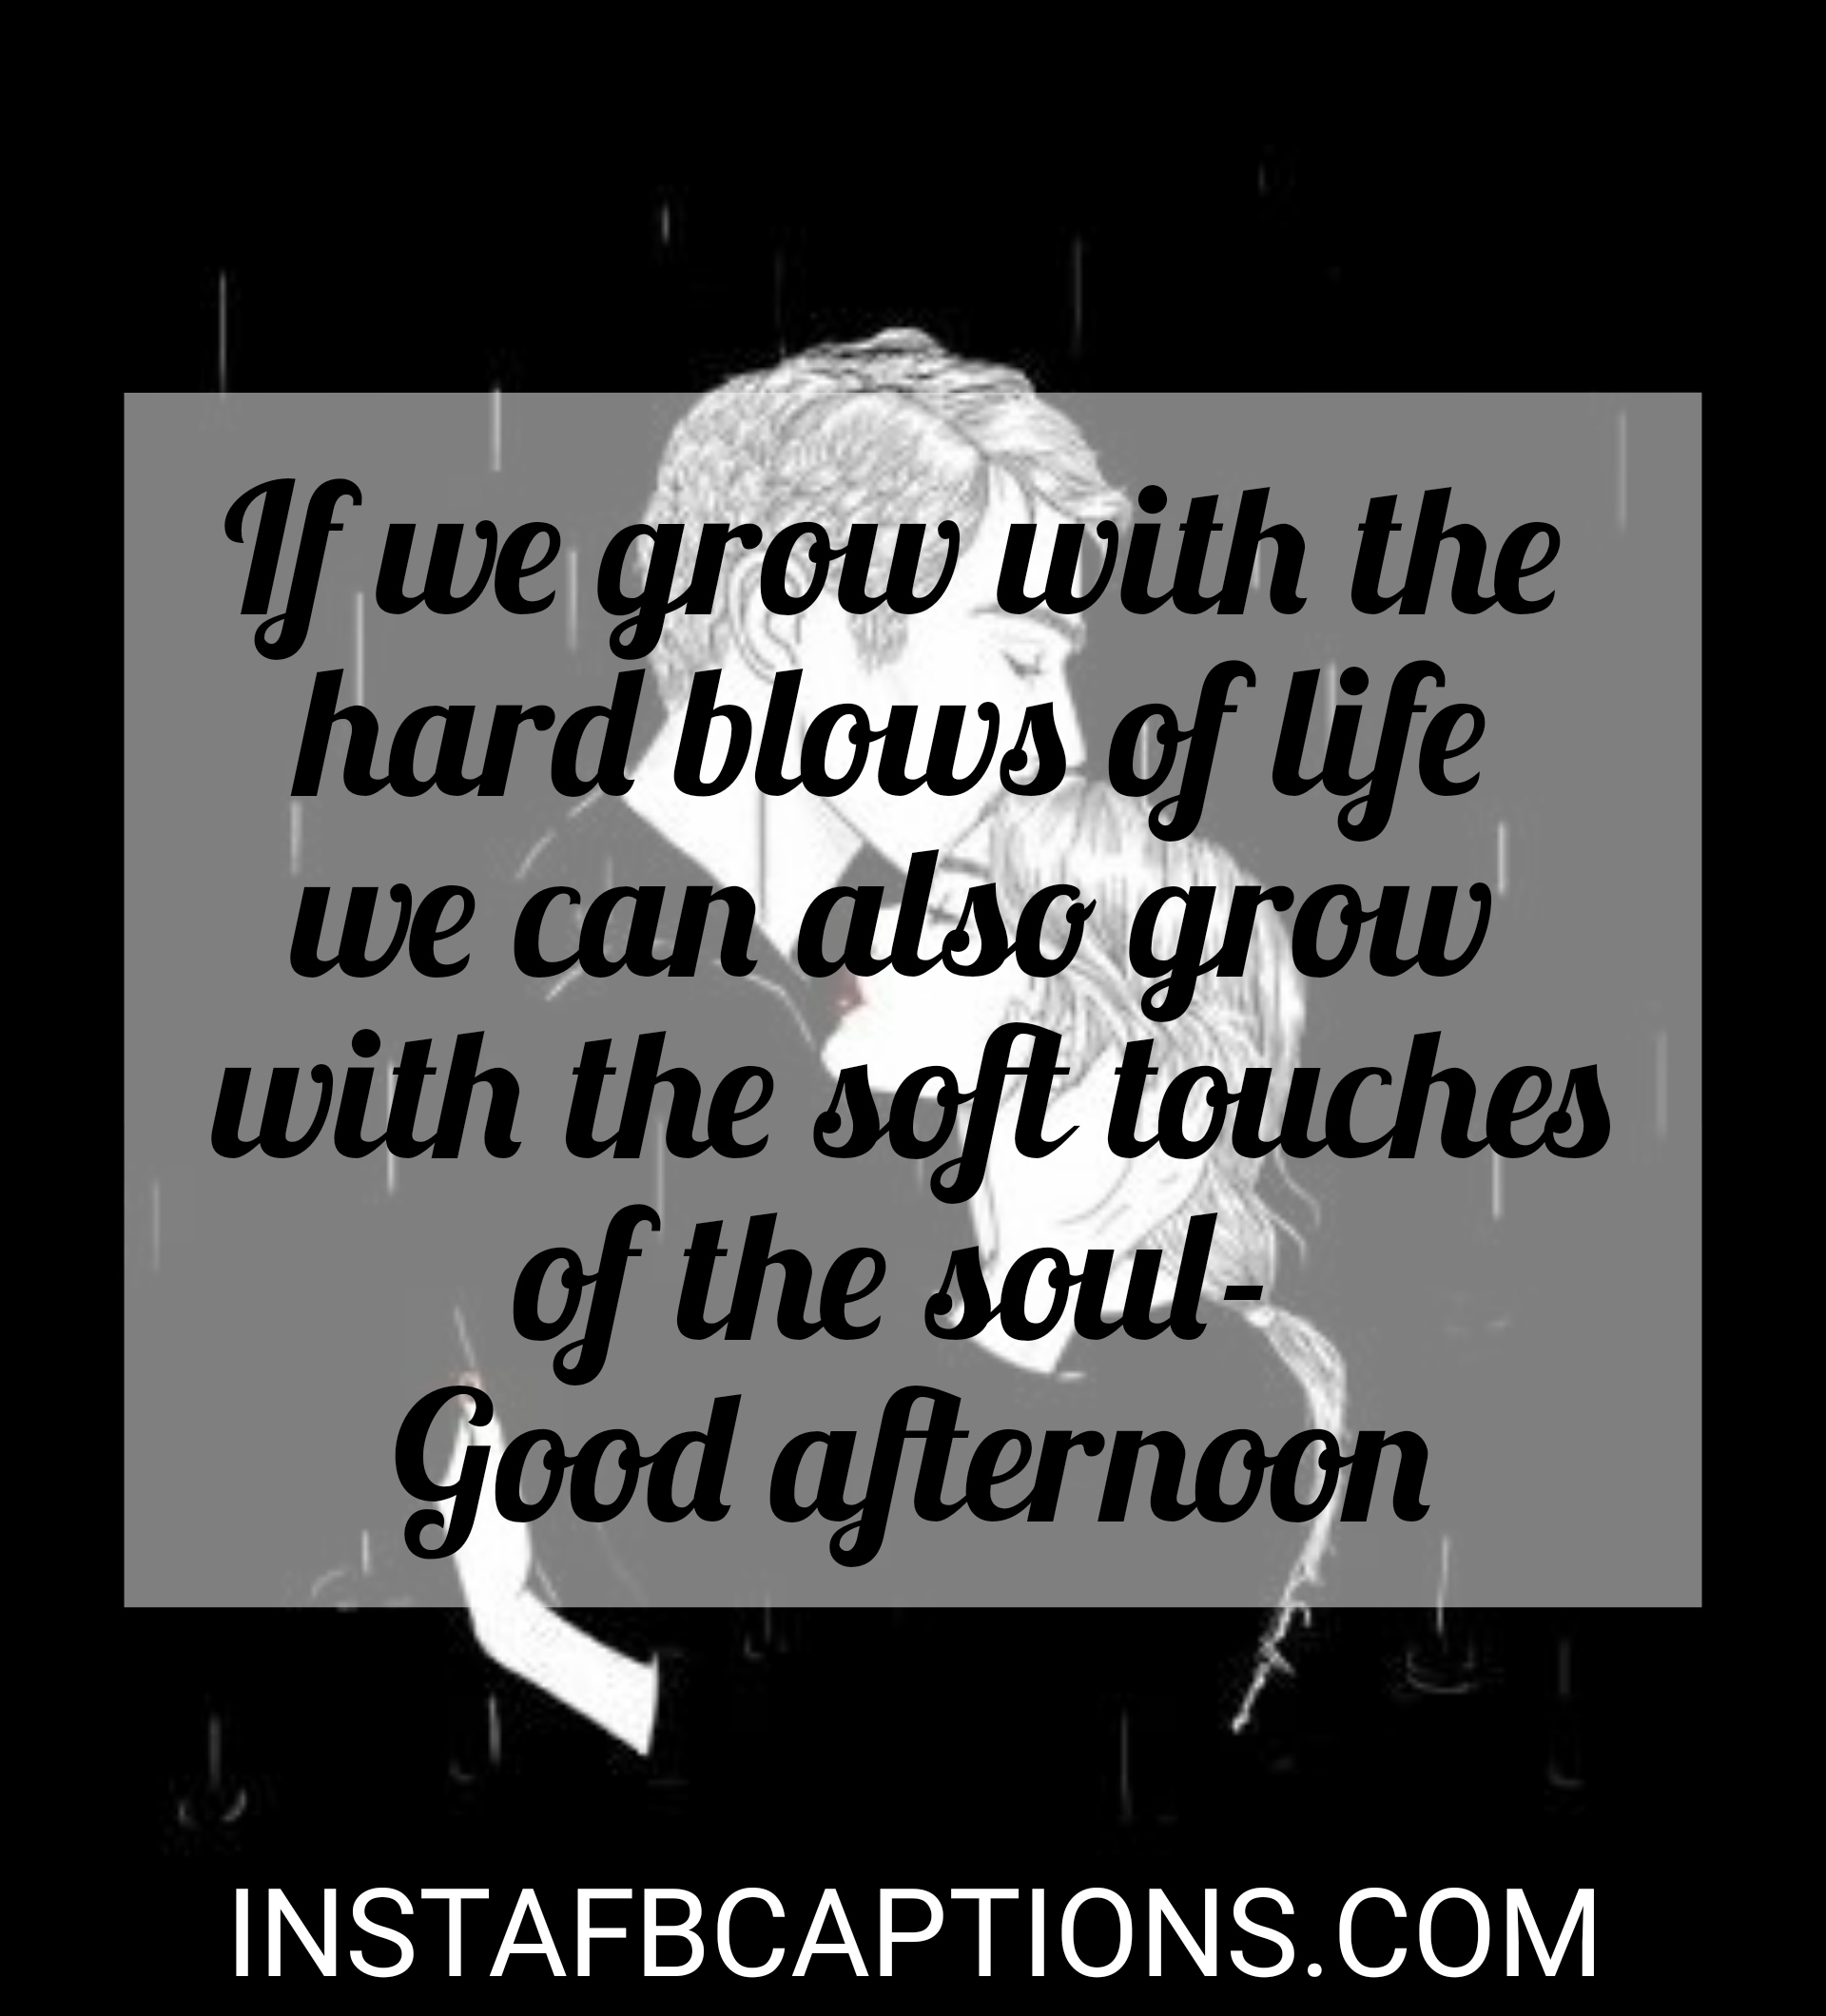 Good Afternoon Quotes For Her  - Good afternoon quotes for her - 50+ GOOD AFTERNOON Instagram Captions 2021